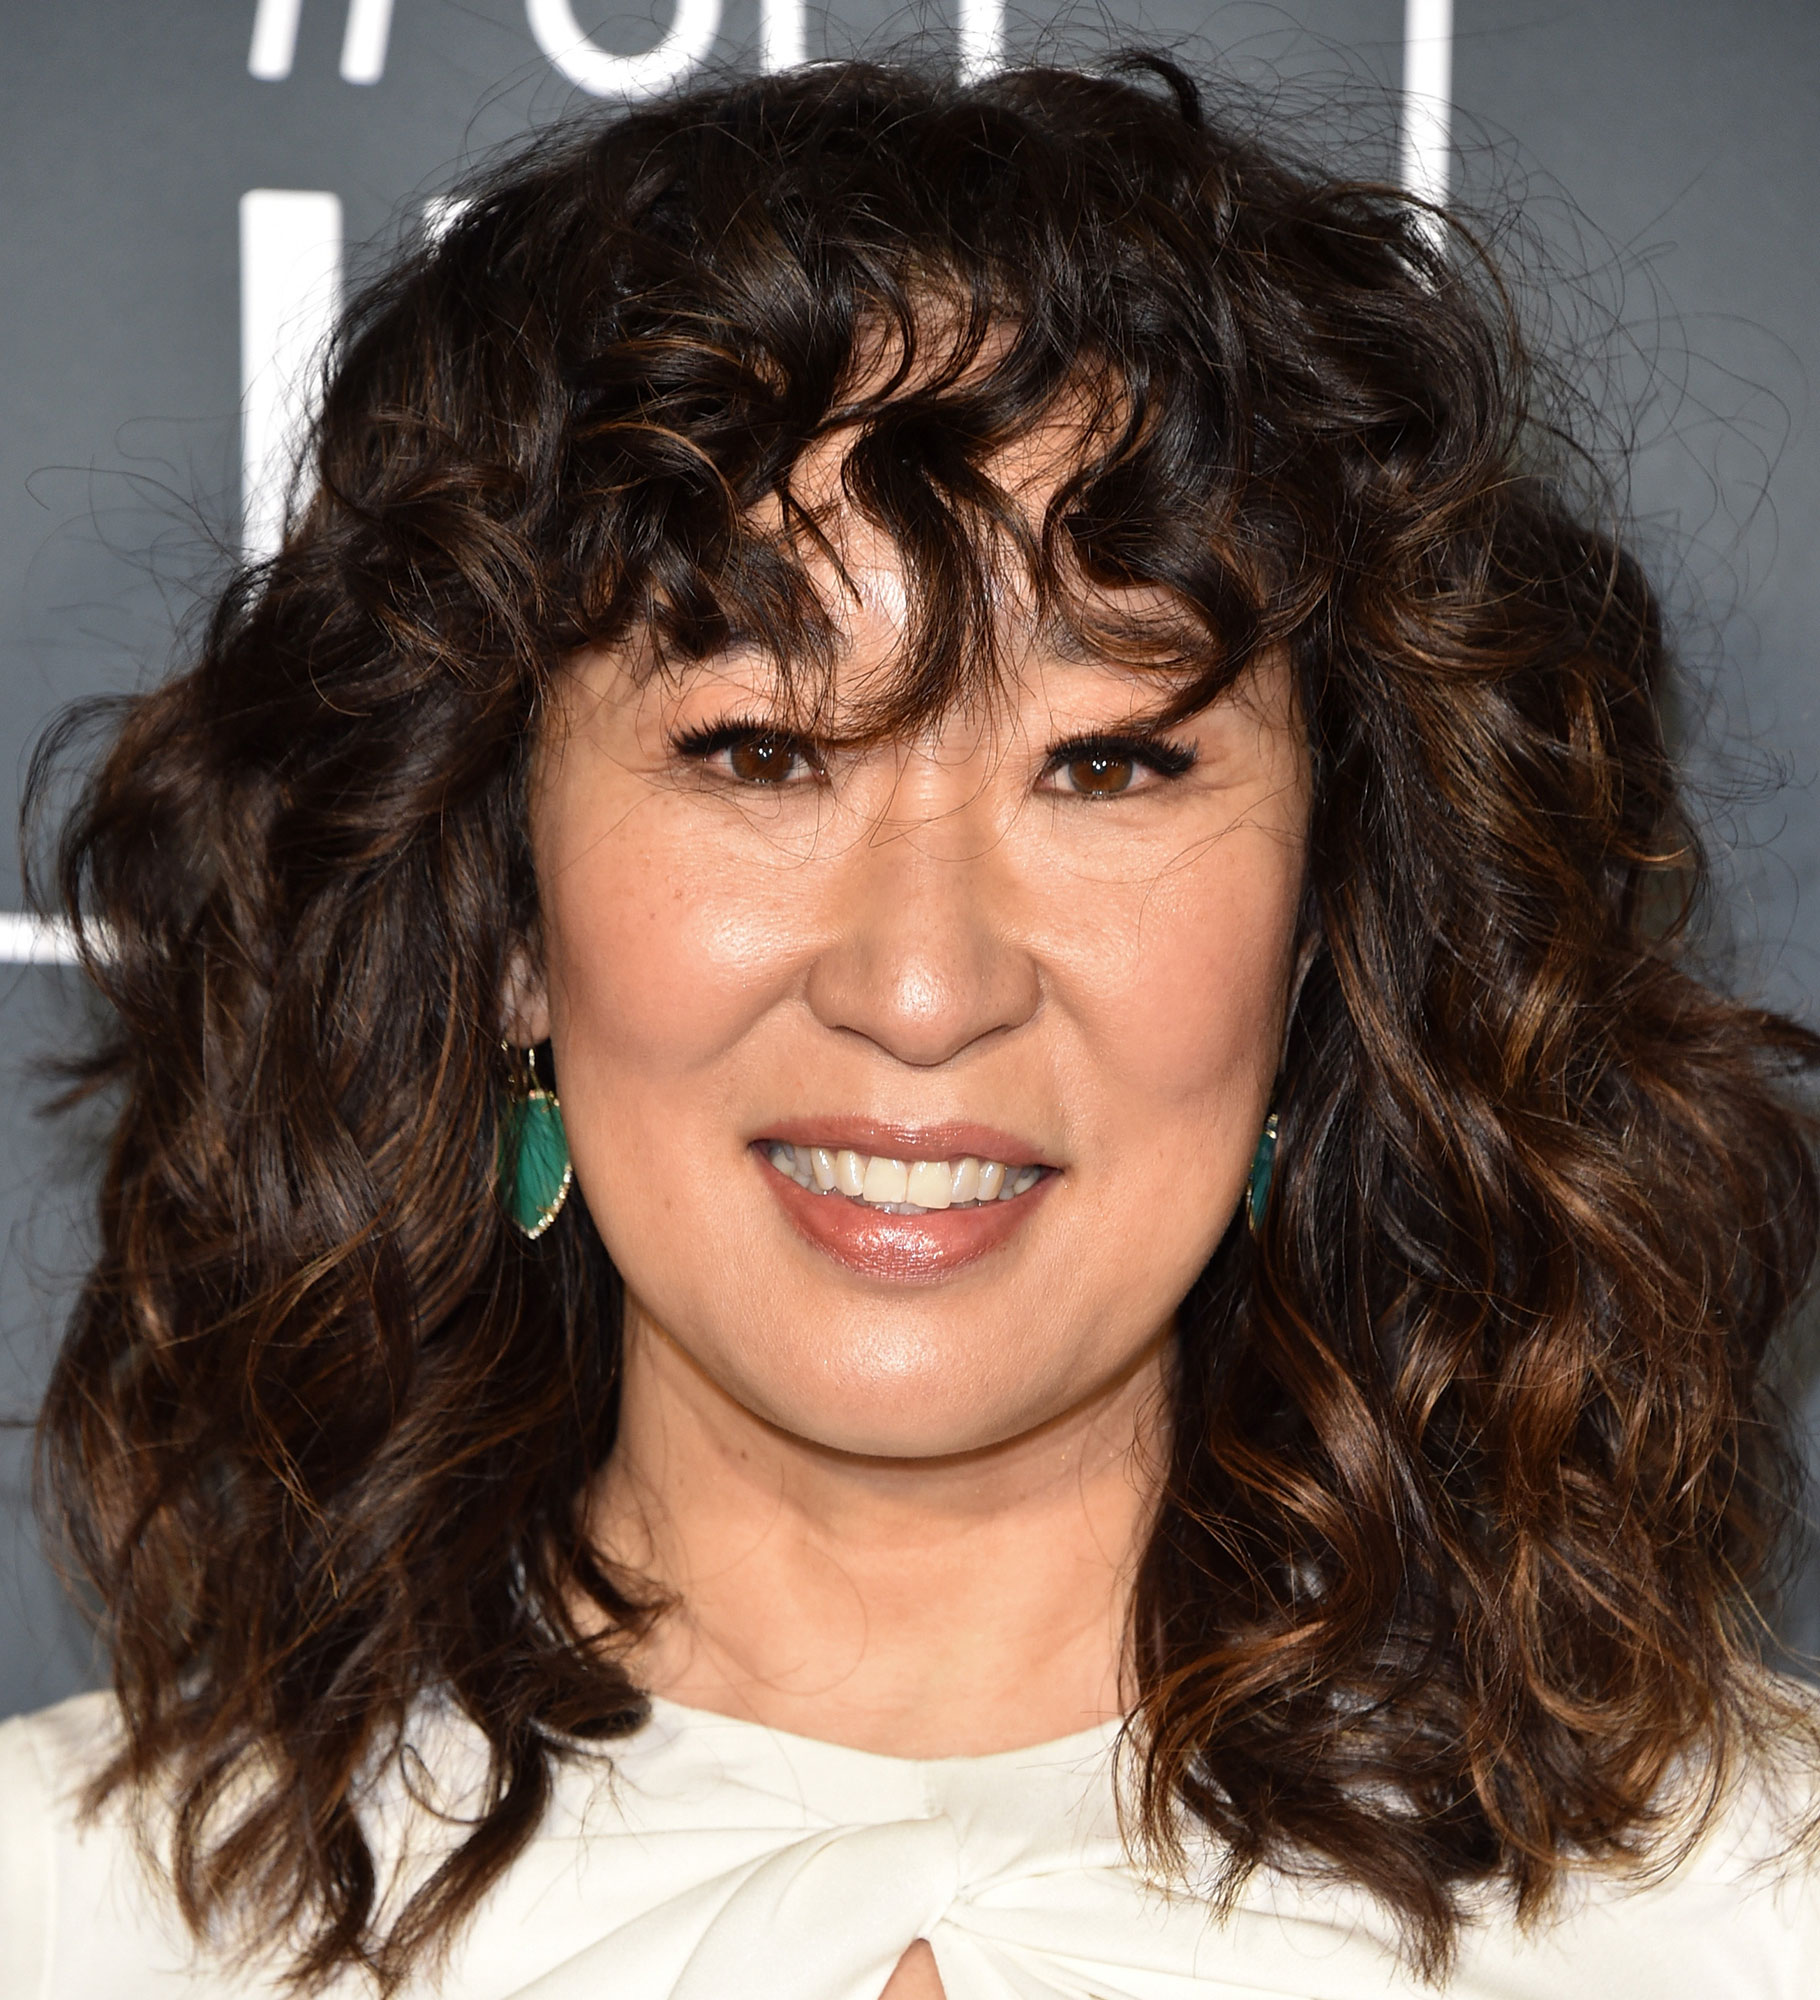 """Sandra Oh Celebrity Bangs: Fierce Fringe Inspo For Your Next Haircut - While curly hair and bangs may sound like a terrifying combo, celeb hairstylist Ted Gibson cut fresh fringe for the Killing Eve star just before the 2019 Critics' Choice Awards. """"Those with curly hair need a bit of softness and bangs need to be broken up a bit,"""" he tells Us ."""